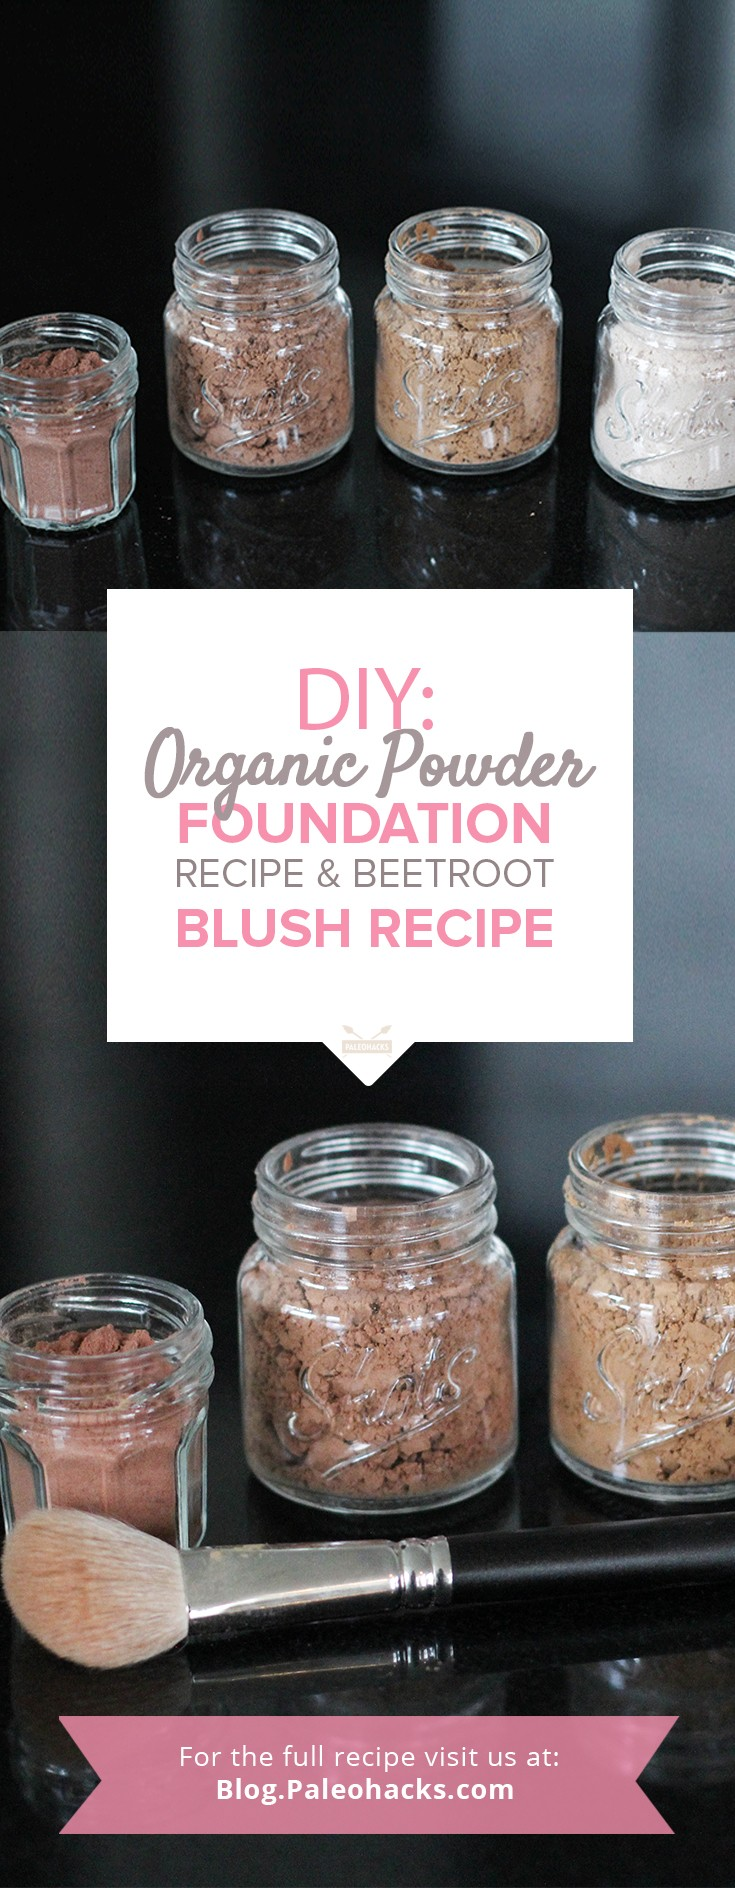 Traditional-PIN-DIY-Organic-Powder-Foundation-Recipe-and-Beetroot-Blush-Recipe.jpg